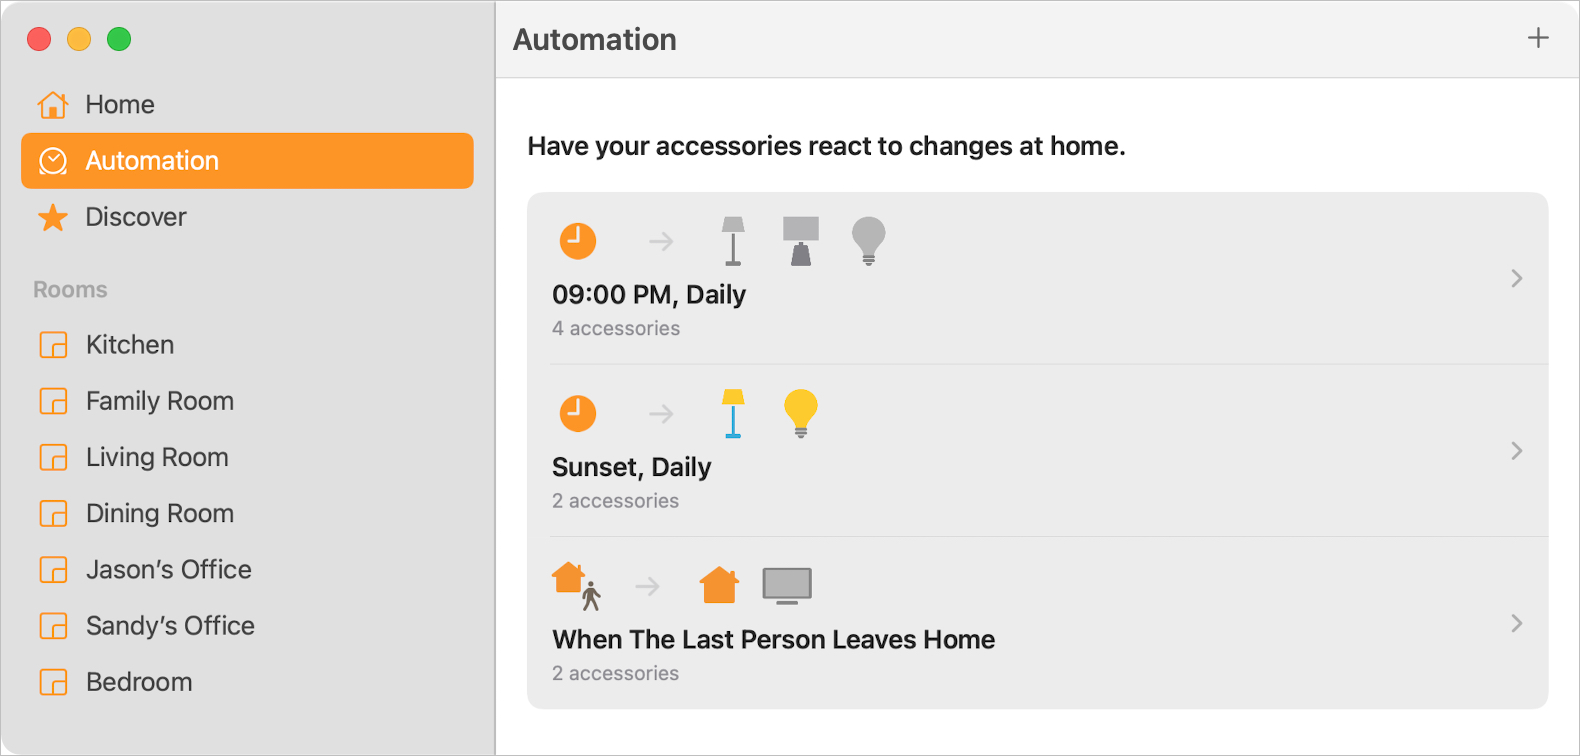 Automation Section of the Home app on Mac